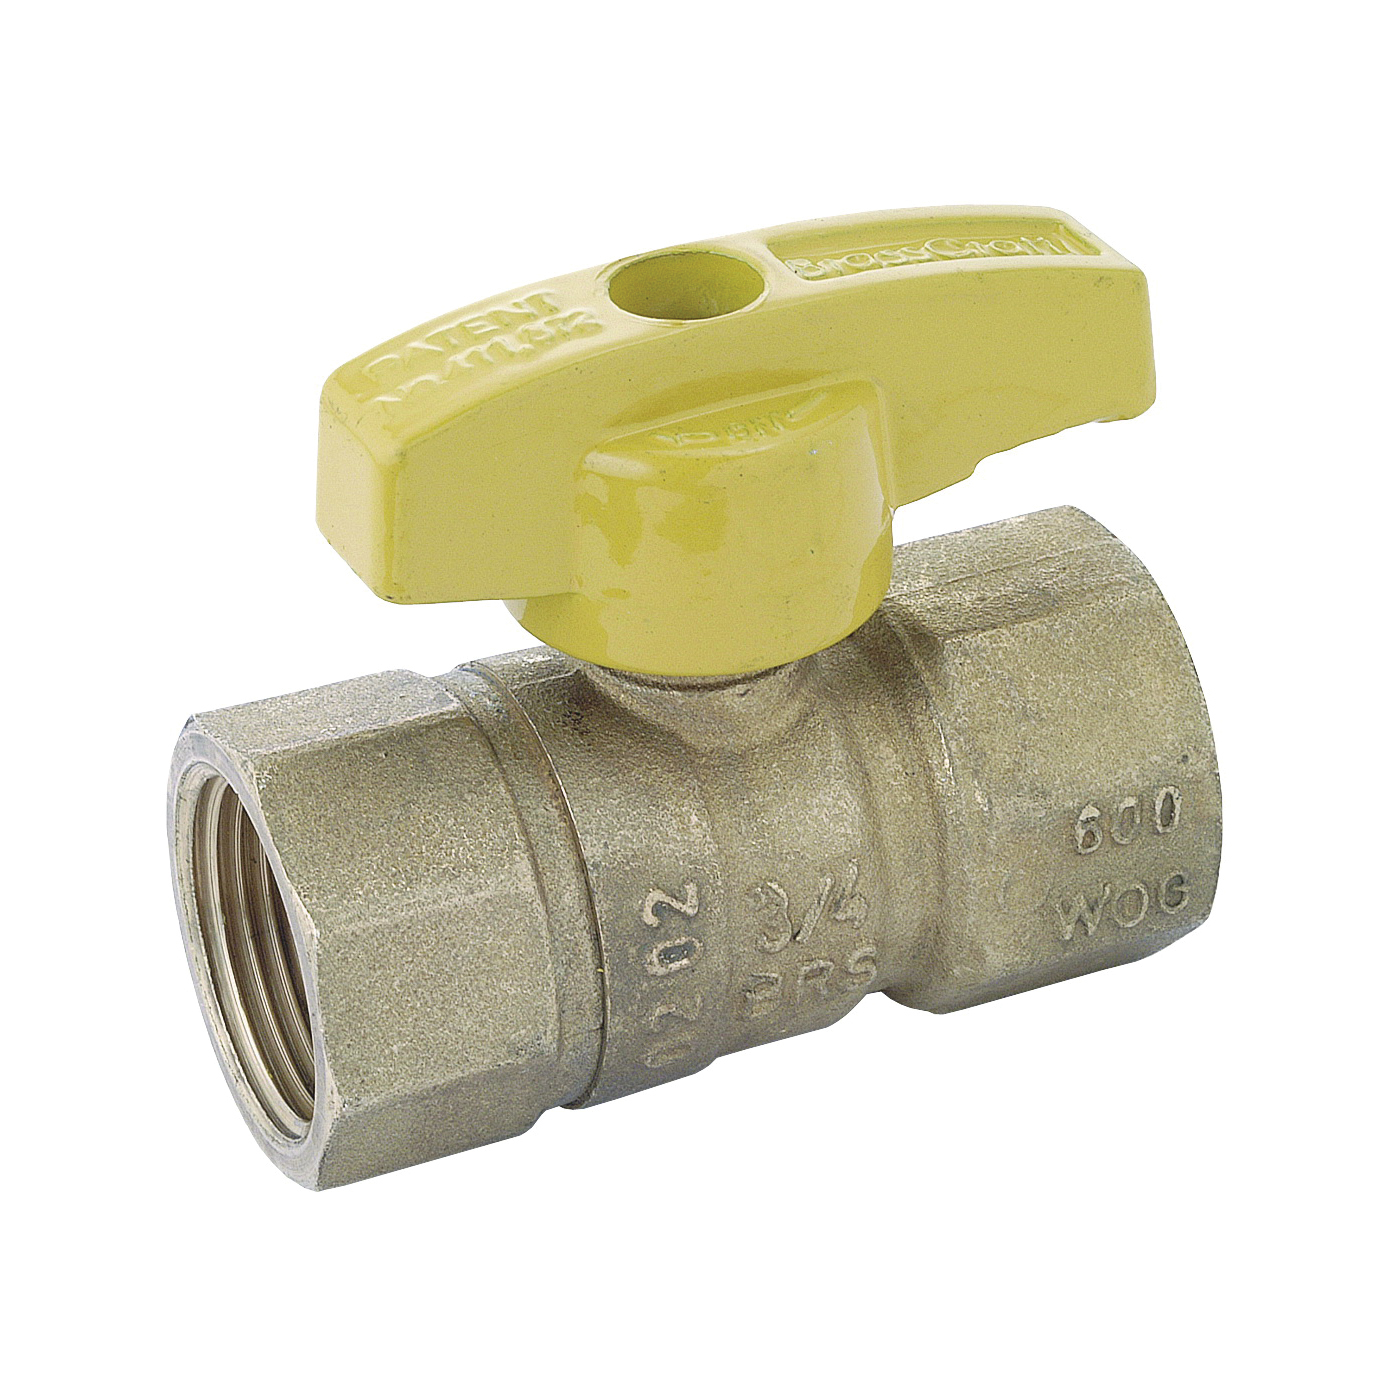 Picture of BrassCraft PSBV503-8 Gas Ball Valve, 1/2 in Connection, FIP, 5 psi Pressure, Brass Body